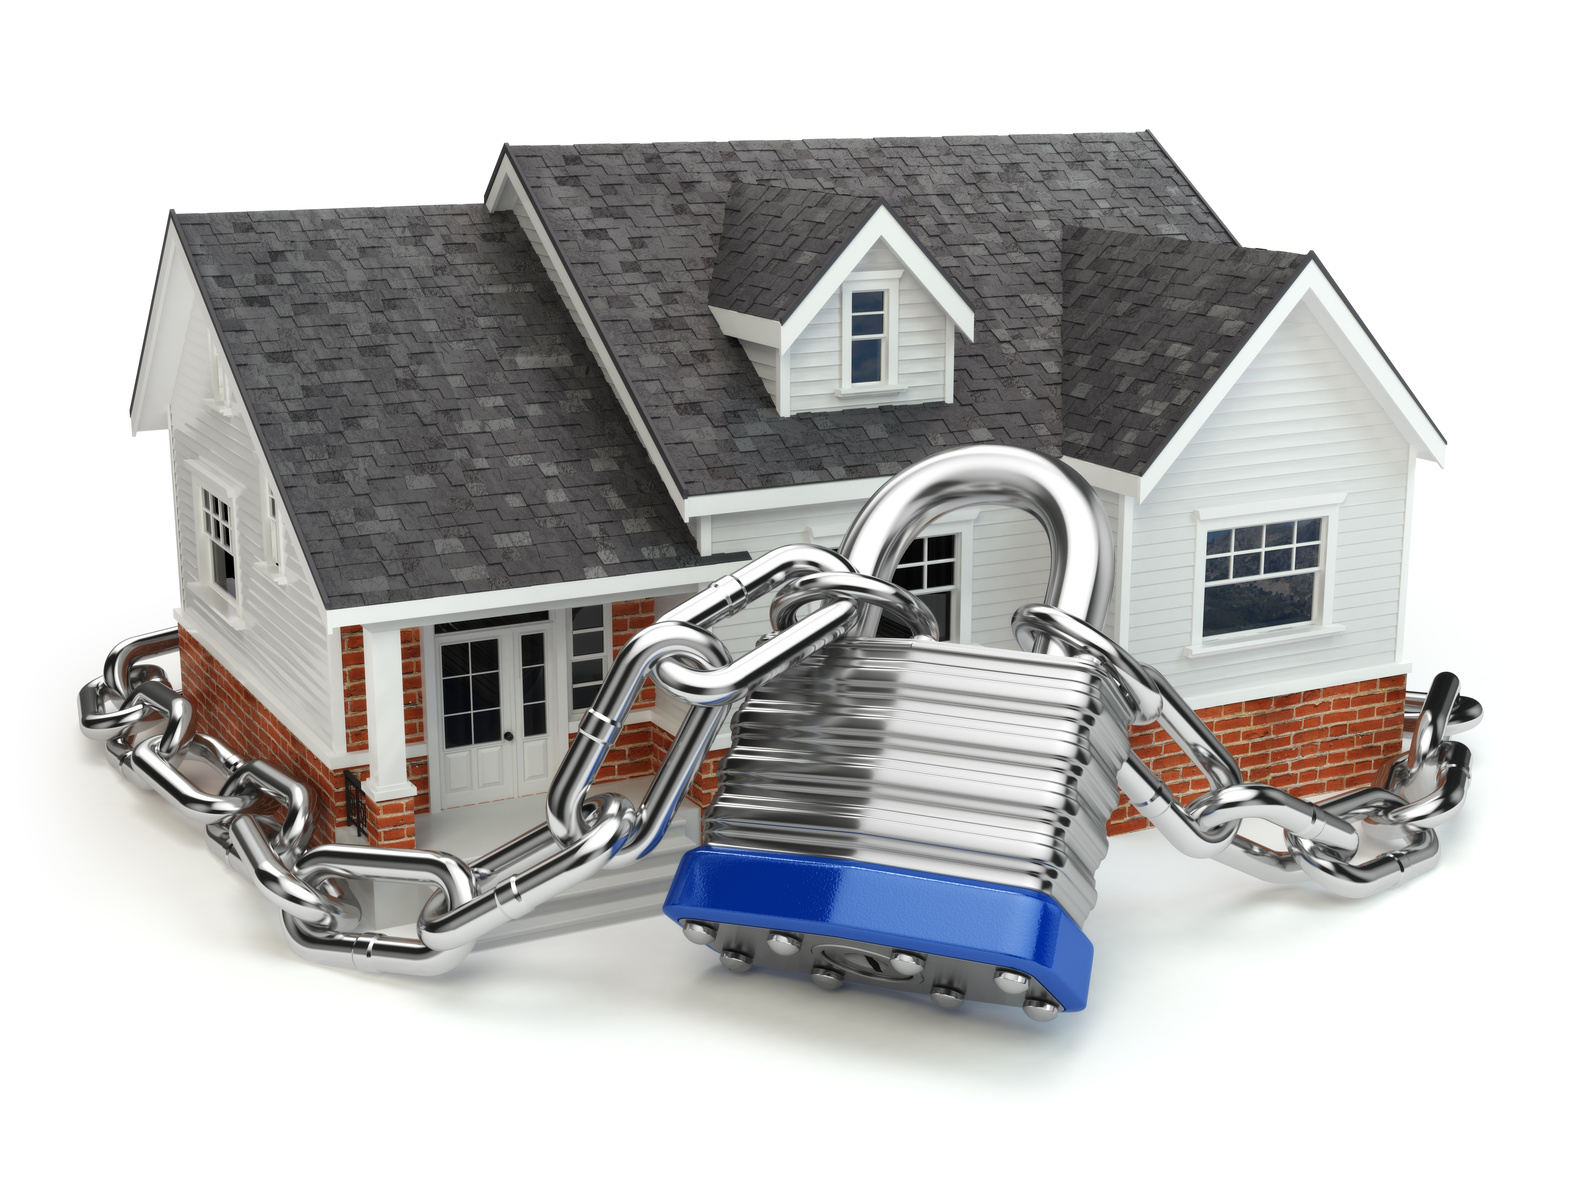 Home security concept. House with lock and chain. 3d